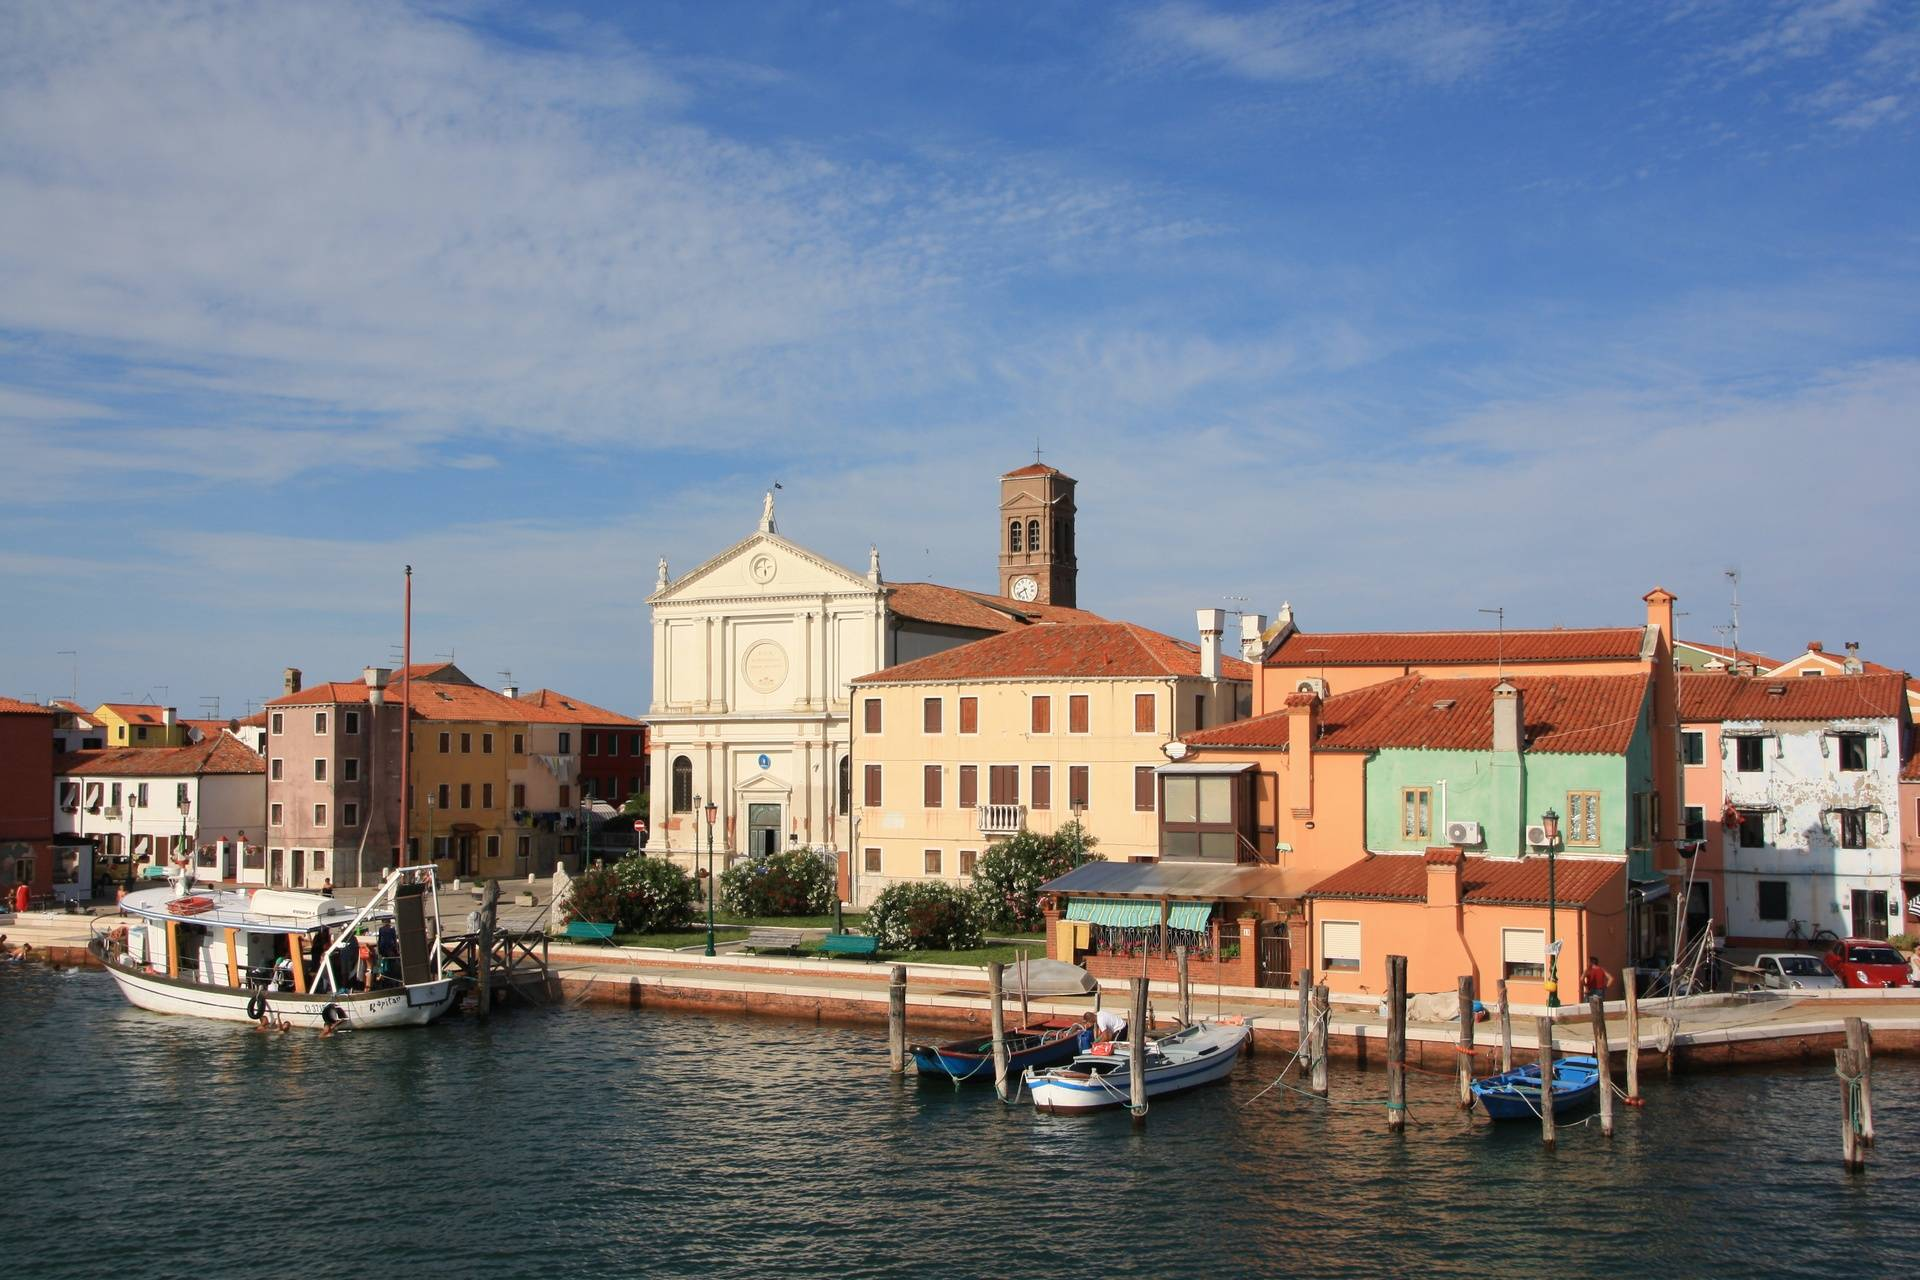 Town of Lido from Venice Lagoon